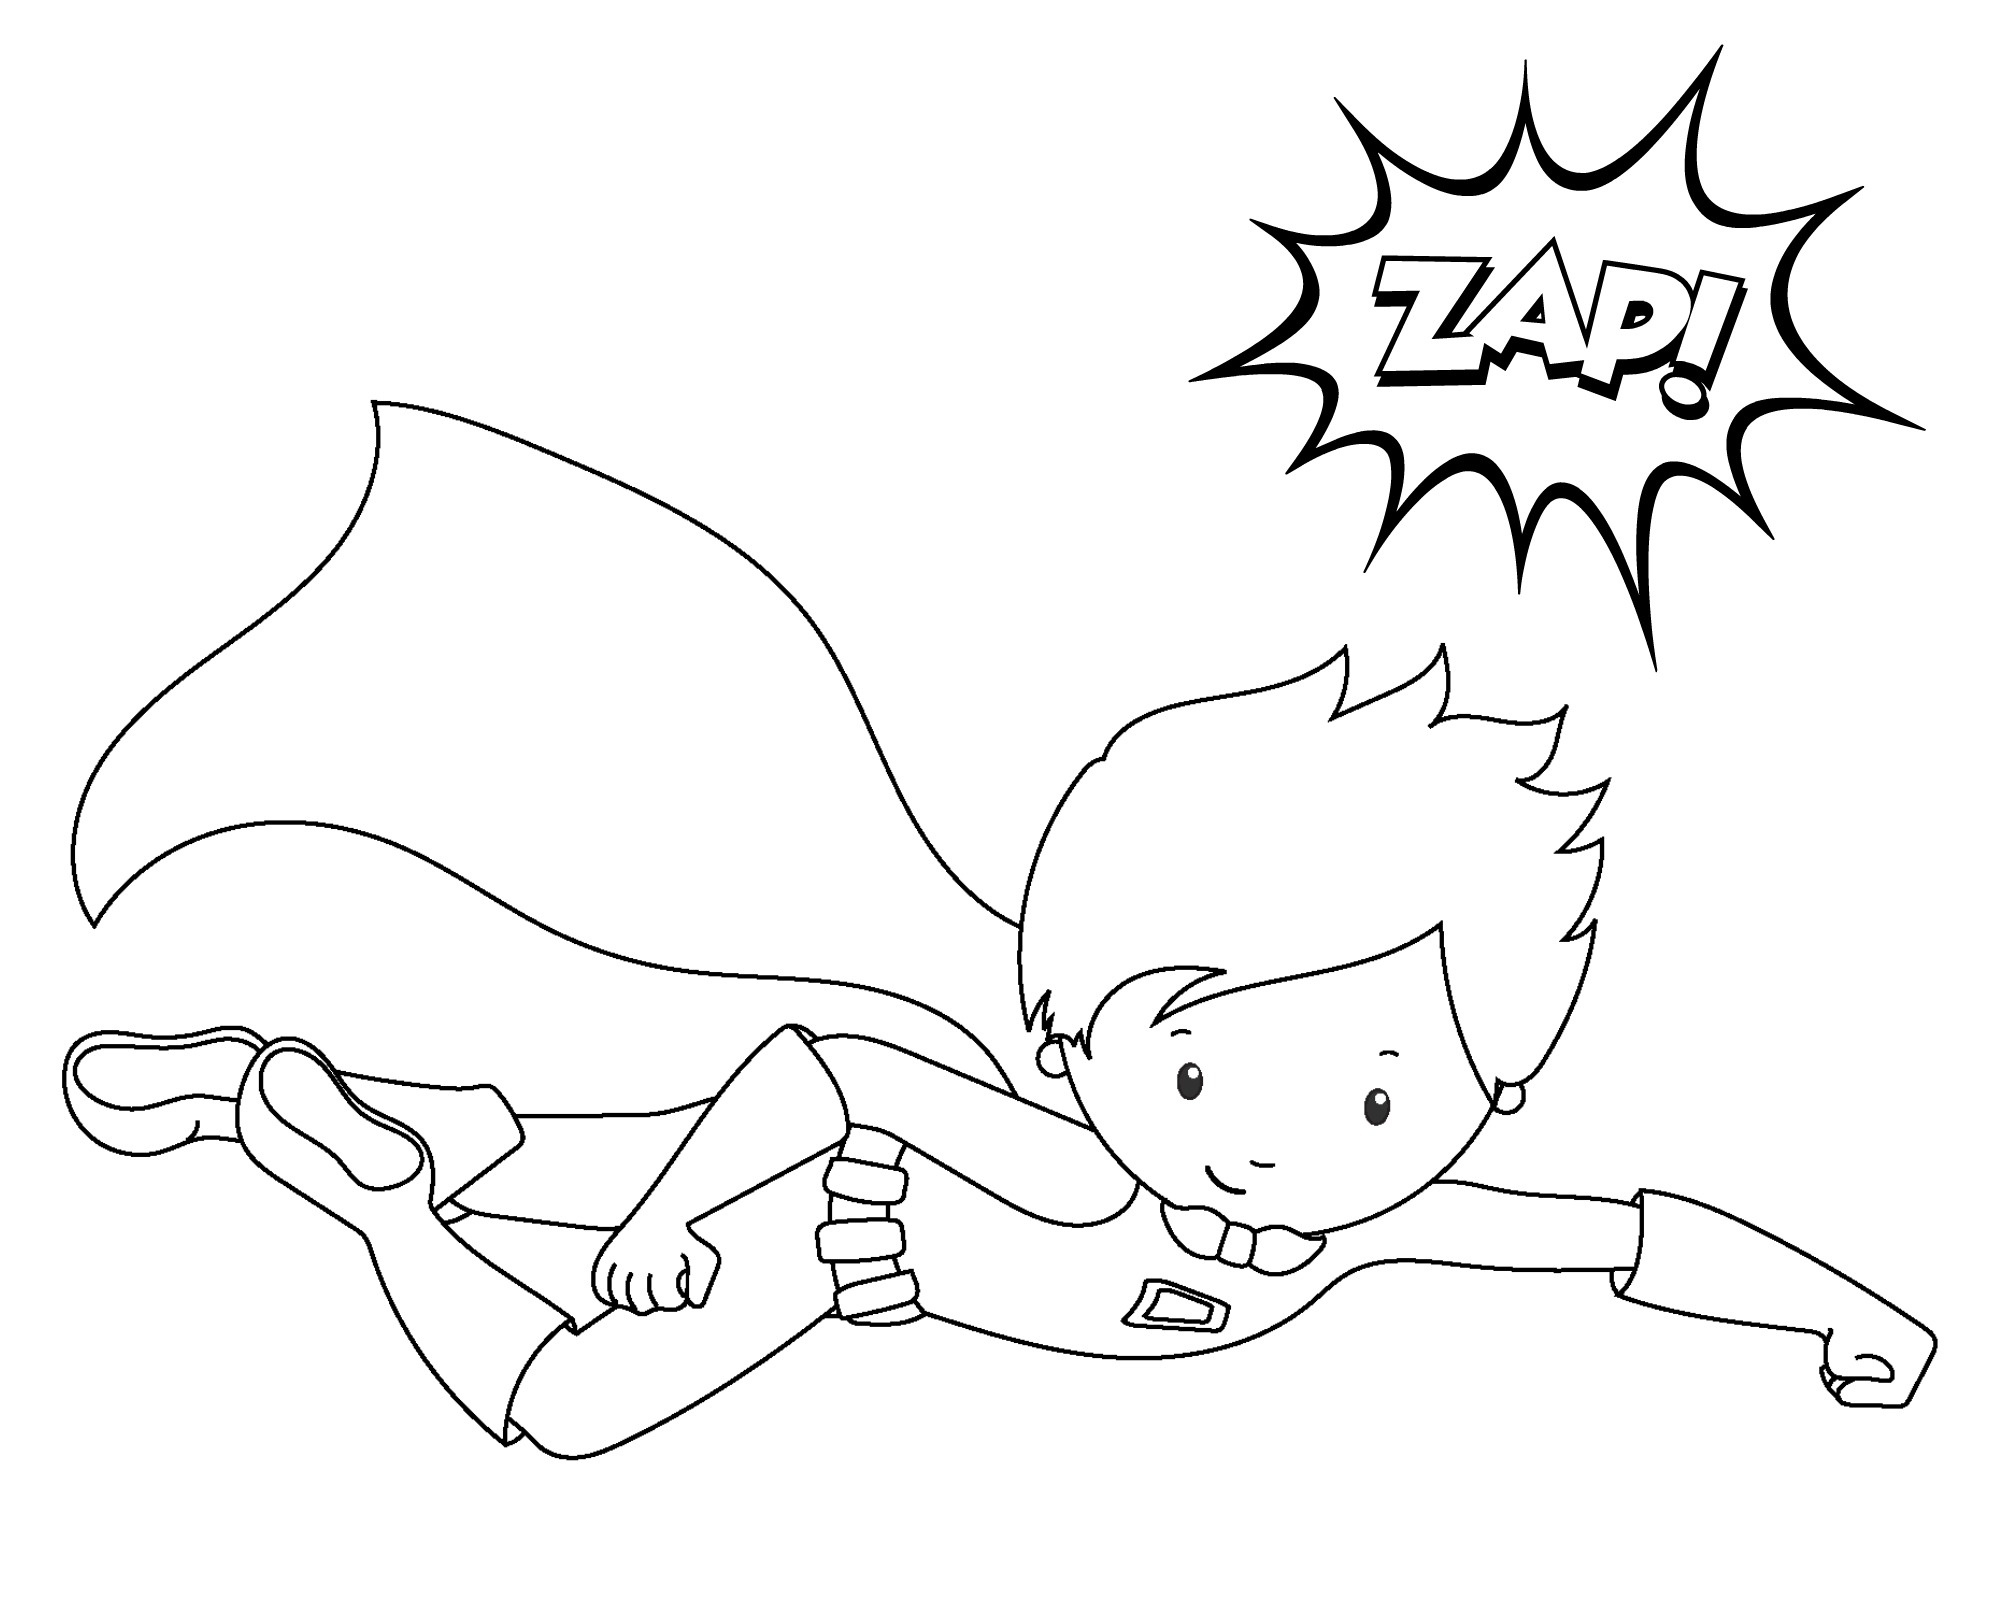 Free Printable Superhero Coloring Sheets For Kids - Crazy Little - Free Printable Superhero Coloring Pages